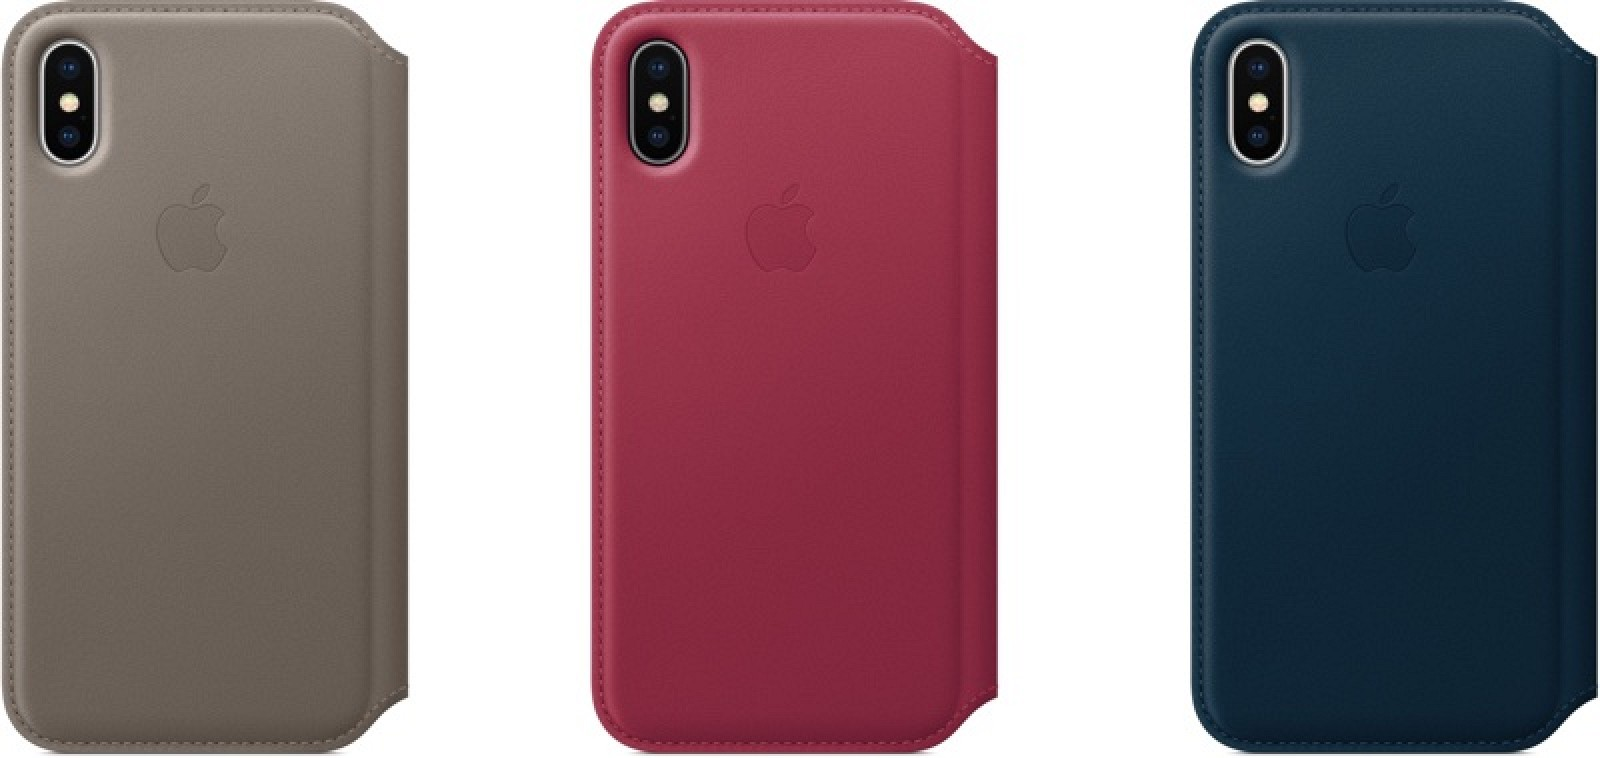 huge discount 6b9c7 fd6d9 Apple Releases New Accessories and Cases for iPhone 8 and iPhone X ...